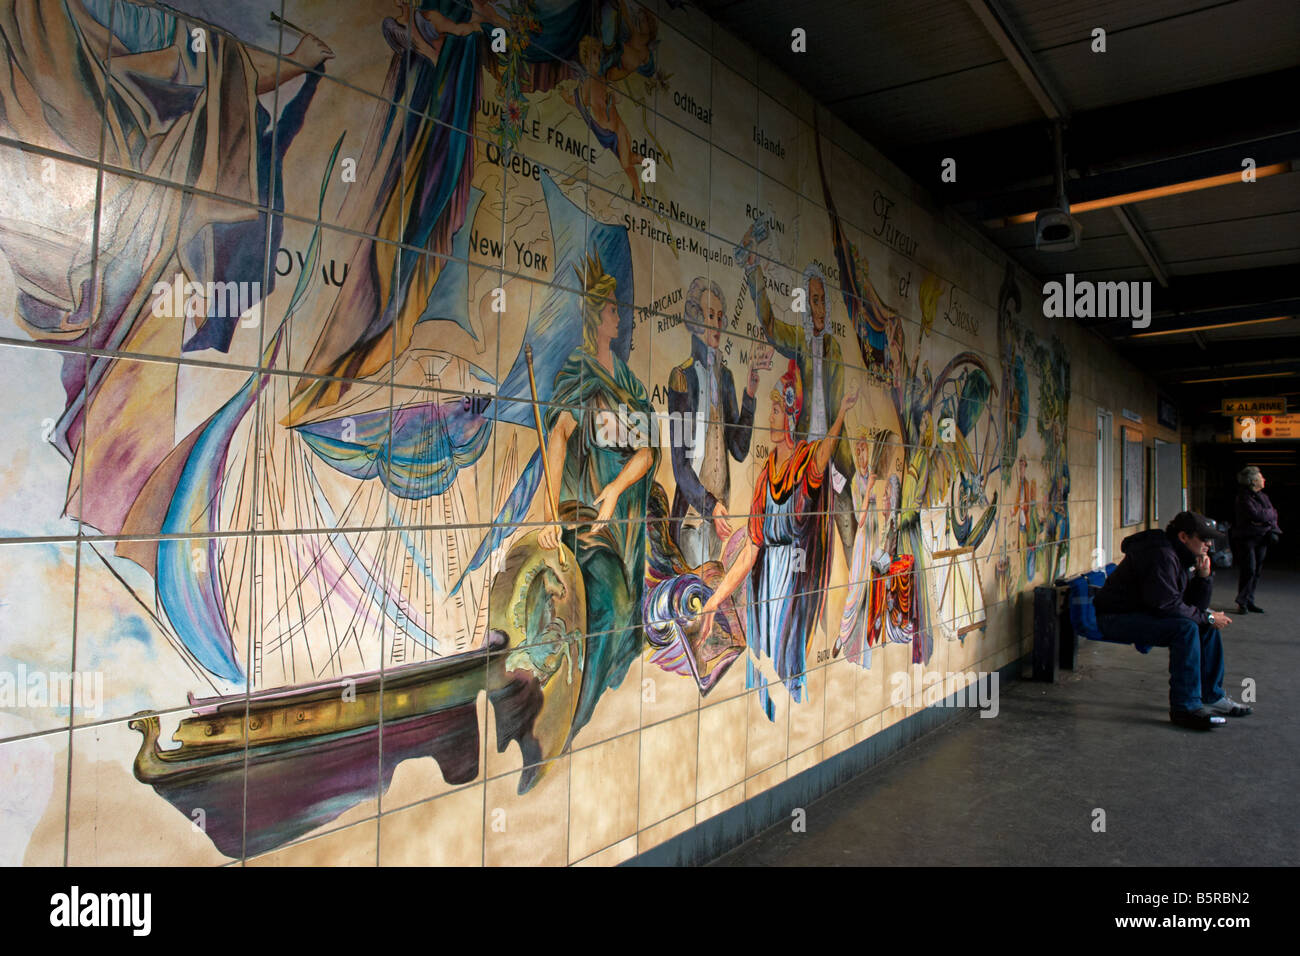 Wall Mural Bastille Station Paris Stock Photos Wall Mural Bastille